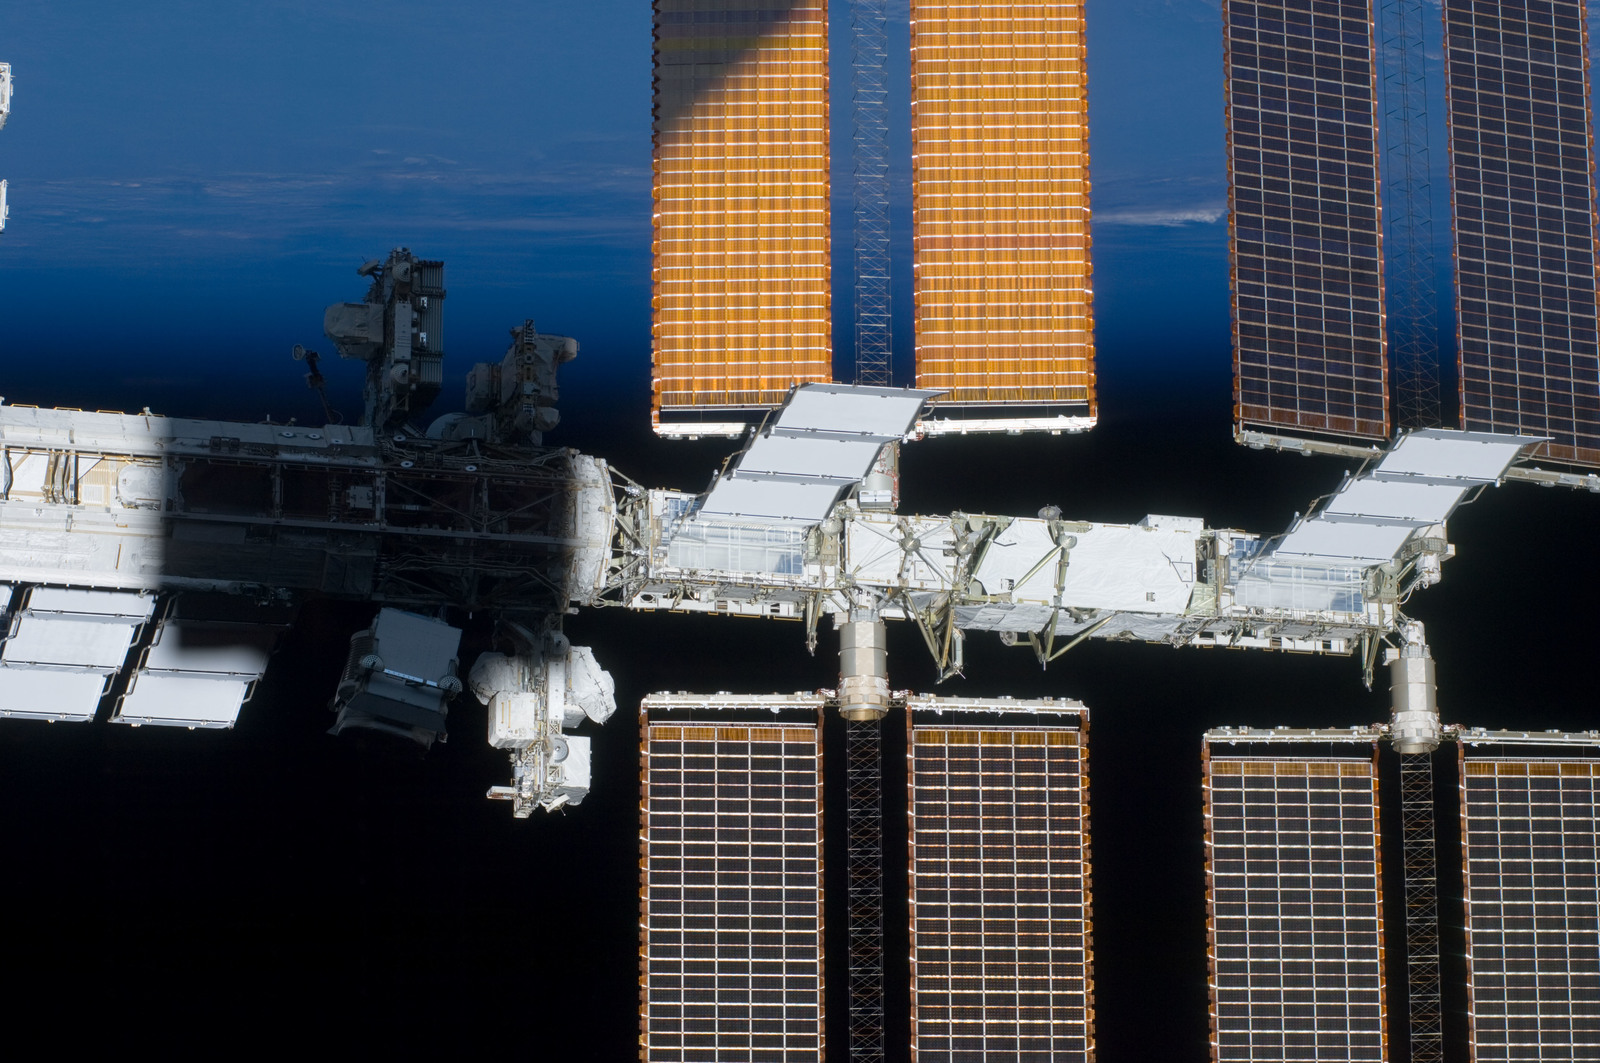 S134E010587 - STS-134 - View of ISS taken during STS-134 Flyaround